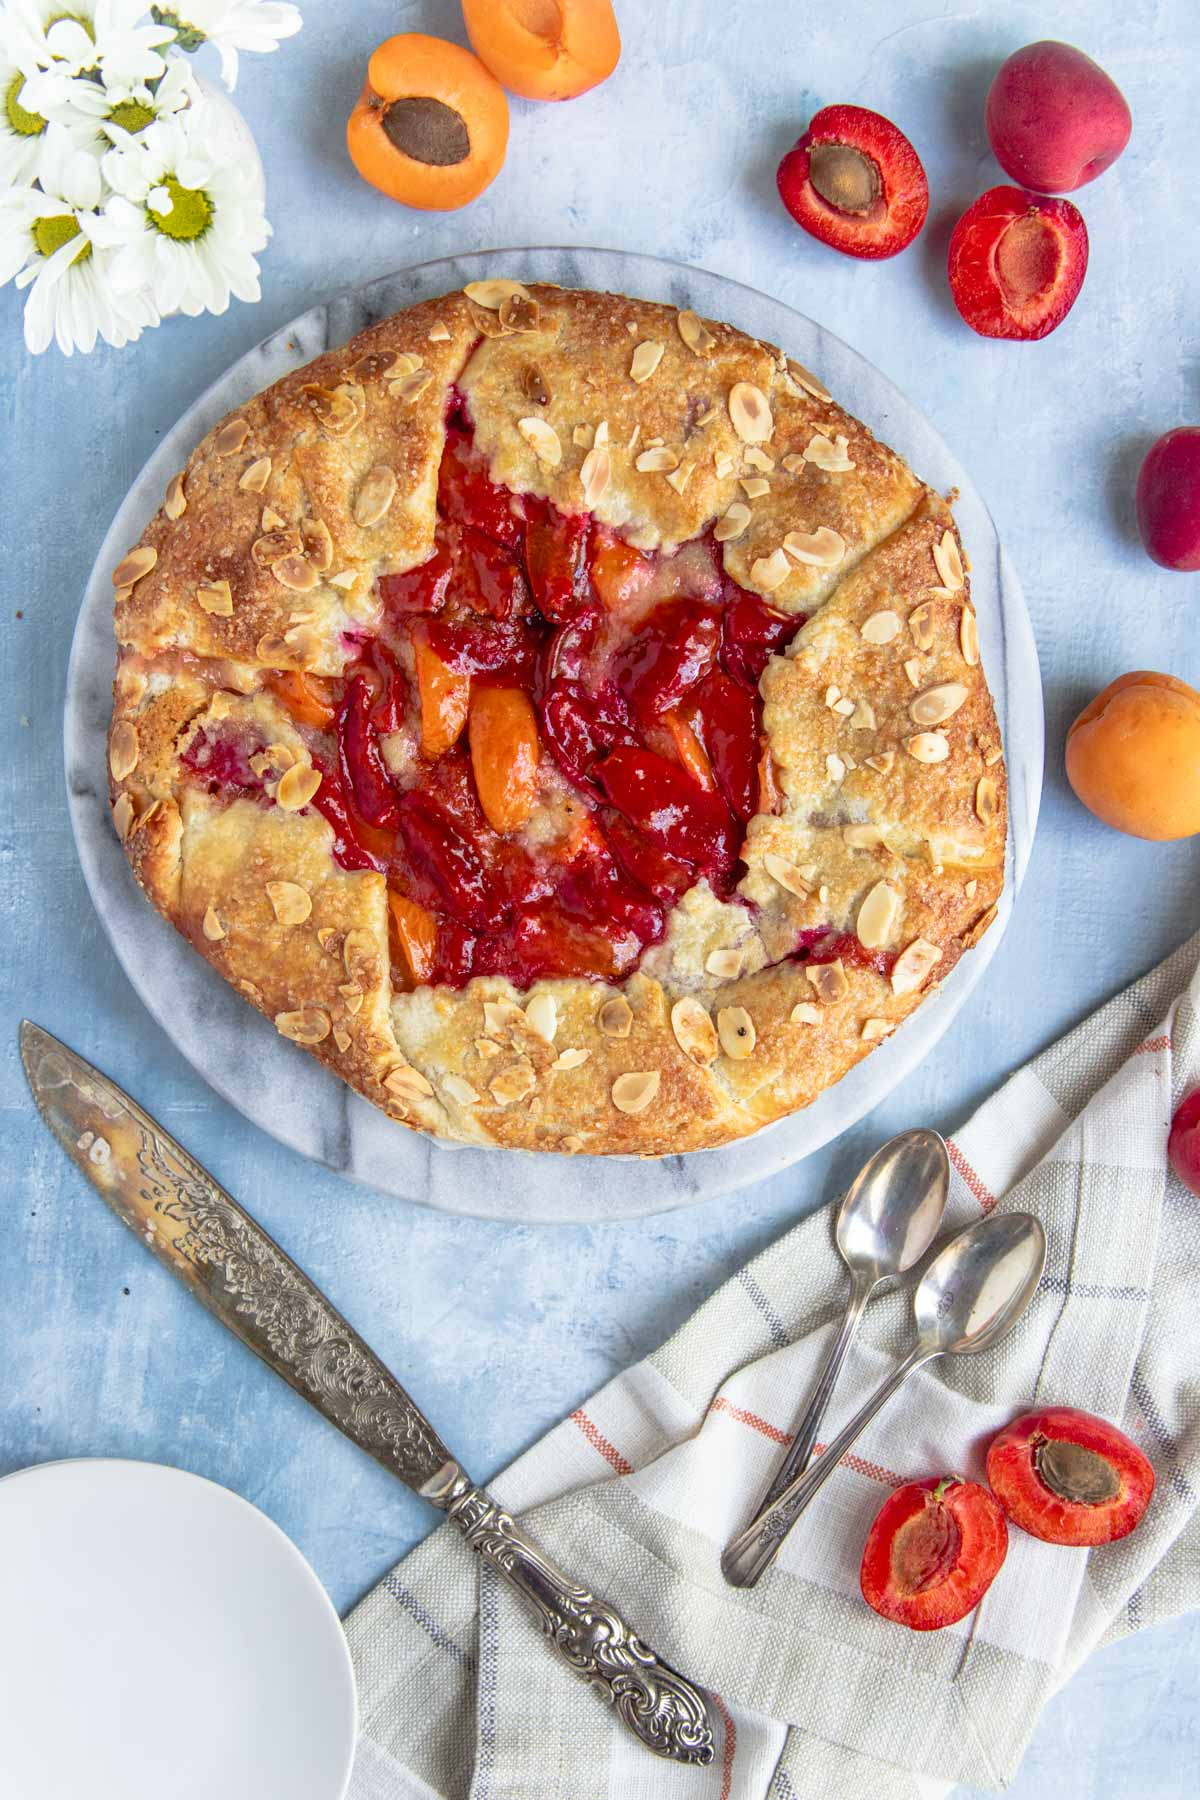 Apricot and almond galette on a serving platter surrounded by fresh apricots